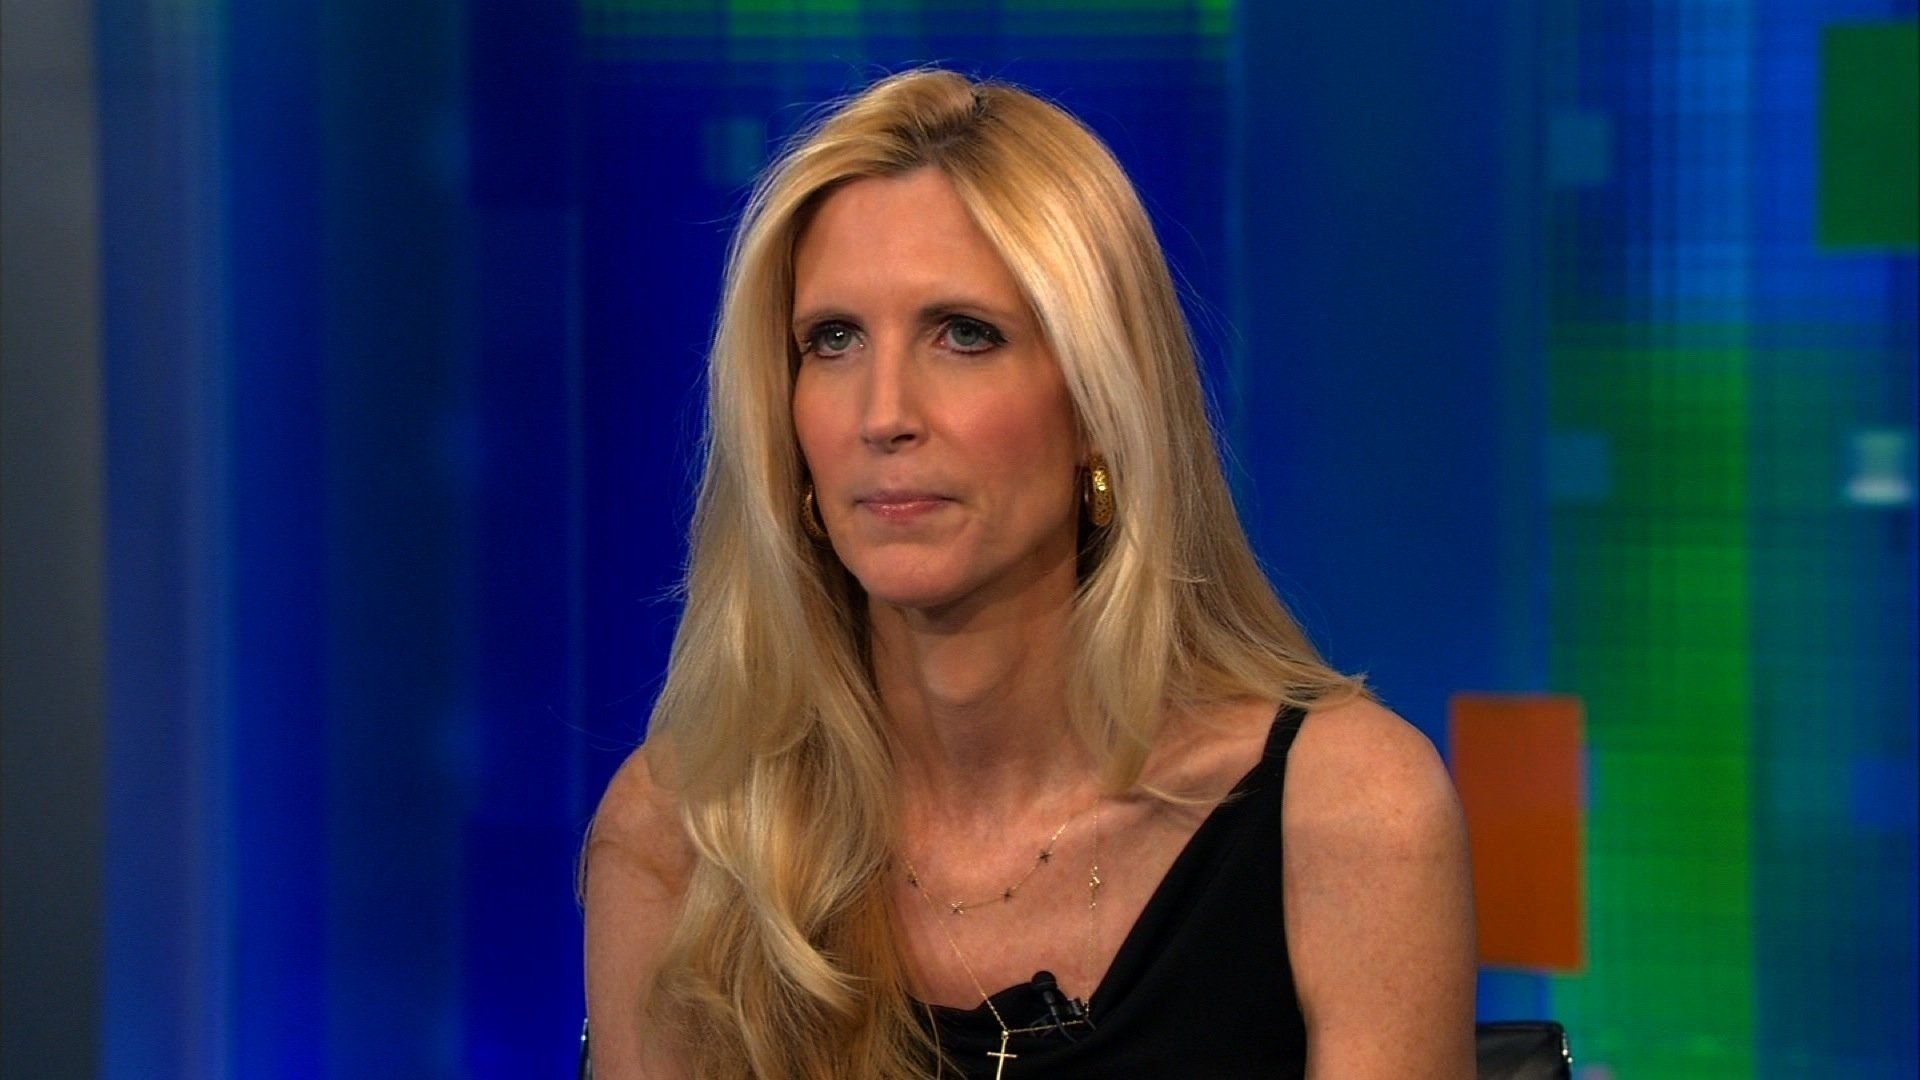 Conservative pundit Ann Coulter posted a series of angry tweets over a seat mix-up she experienced on a Delta flight over the weekend